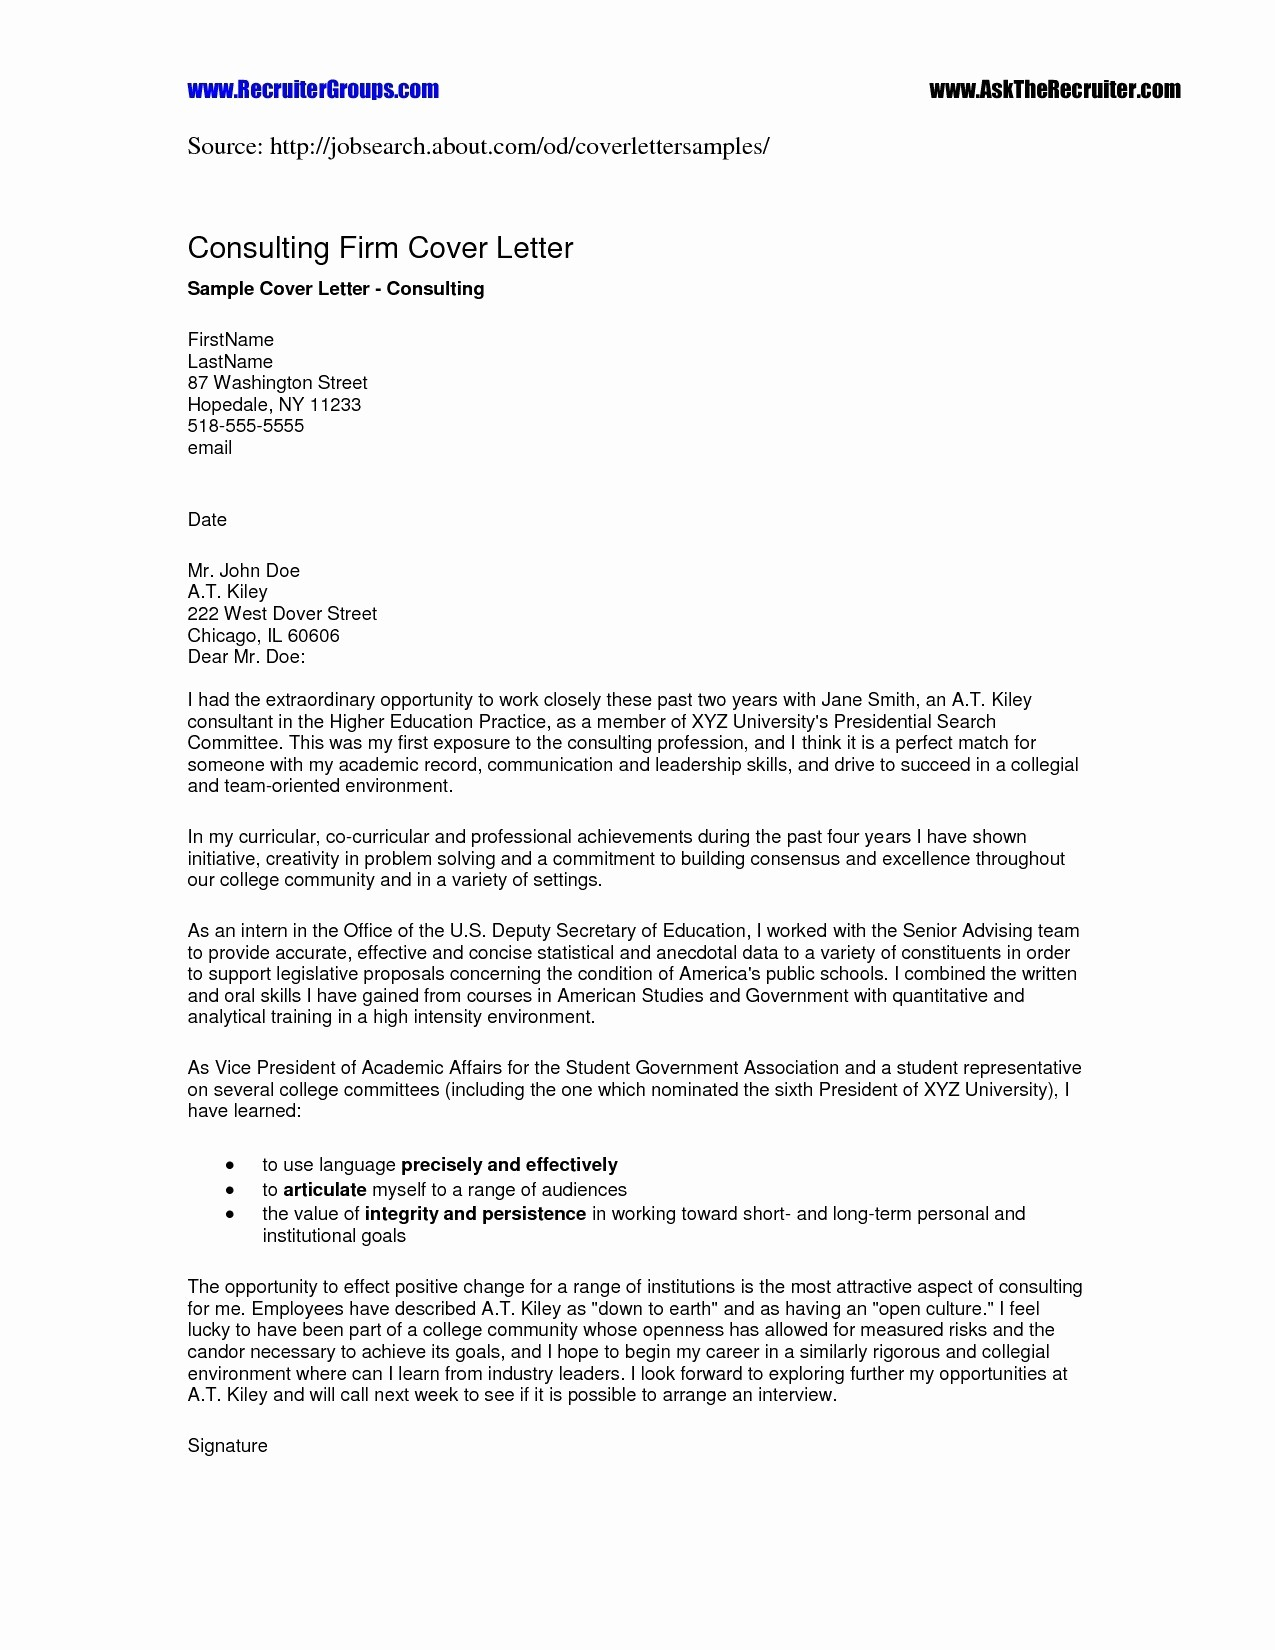 self employed letter template example-Cover Letter Self Employe Inspirationa Self Employment Resume Example Self Employed Resume Template New 11-l